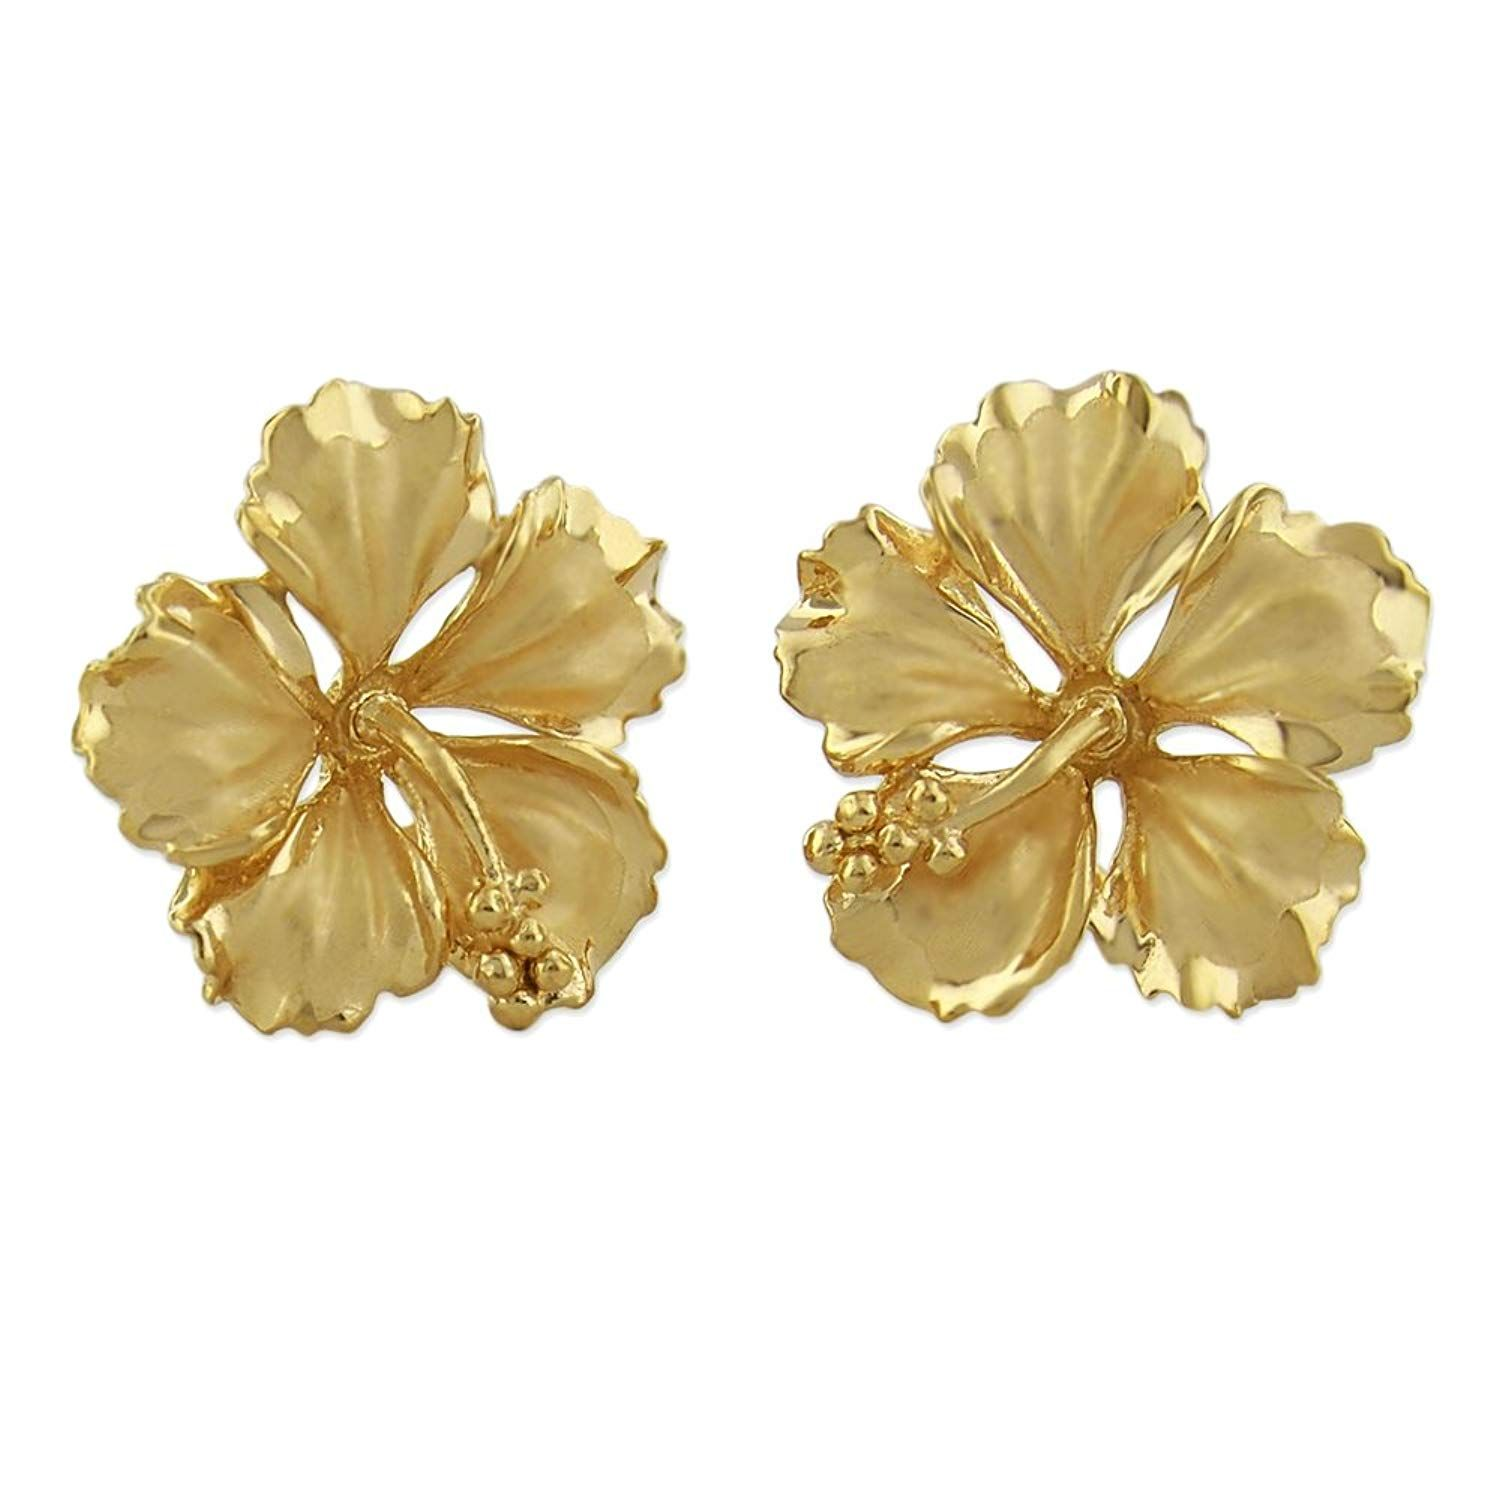 14kt Yellow Gold Plated Sterling Silver 5 8 Inch Hibiscus Stud Earrings Very Kind Of You To Have Sterling Silver Earrings Studs Stud Earrings Gold Ear Jacket